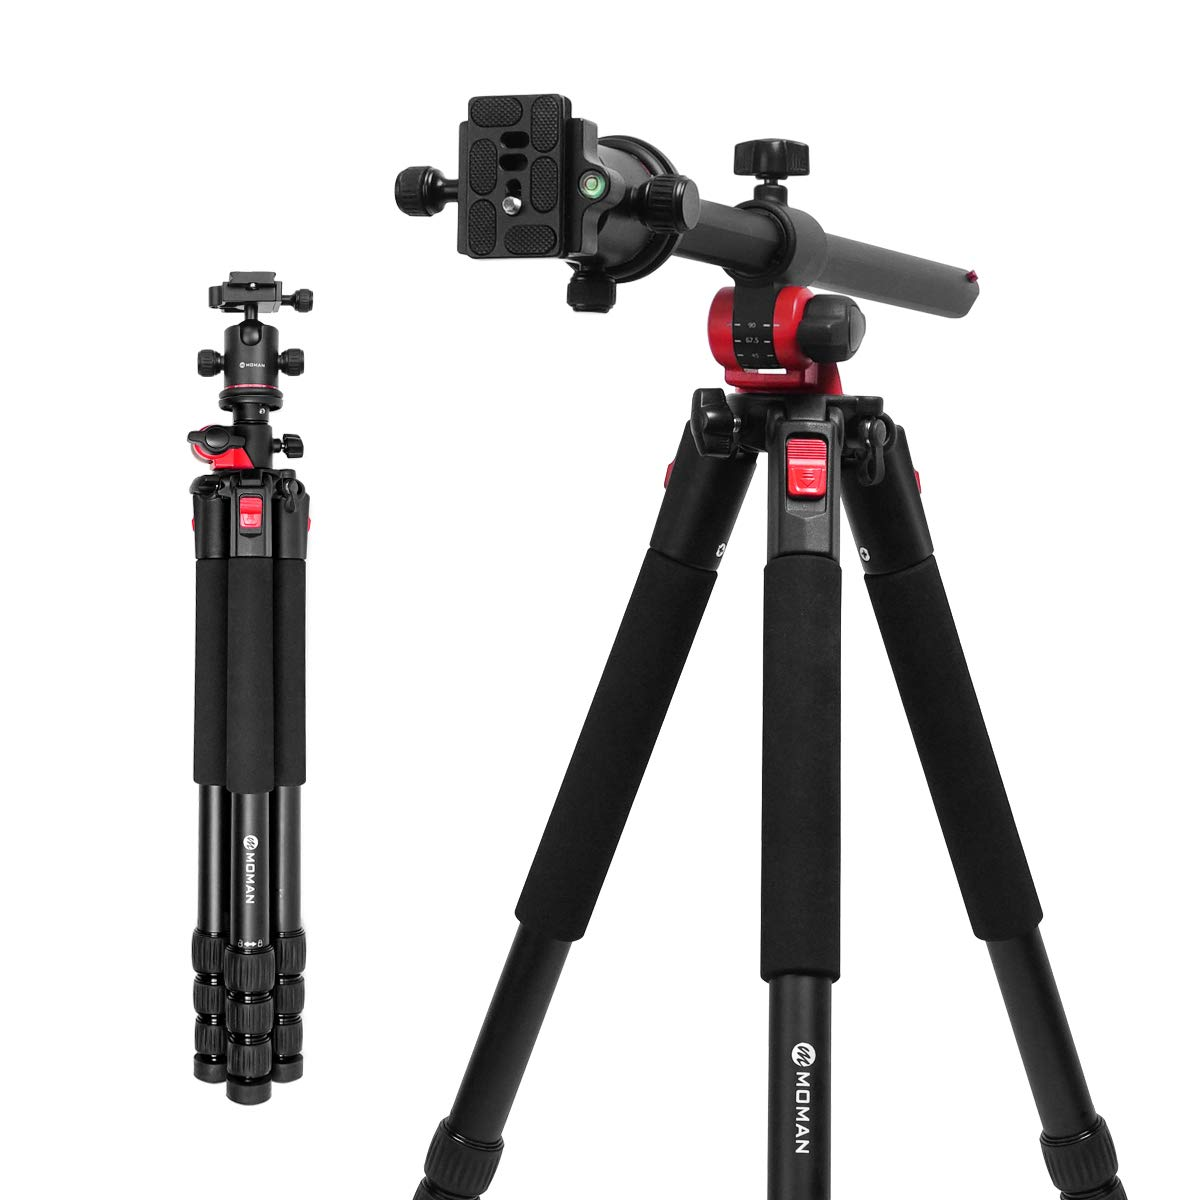 Unipod Monopod Tripod for Camera DSLR Camcorder DV, Lightweight Portable Aluminum Alloy Alpenstock, Tripod Base Included, 5 Sections Up to 65 inch … Moman